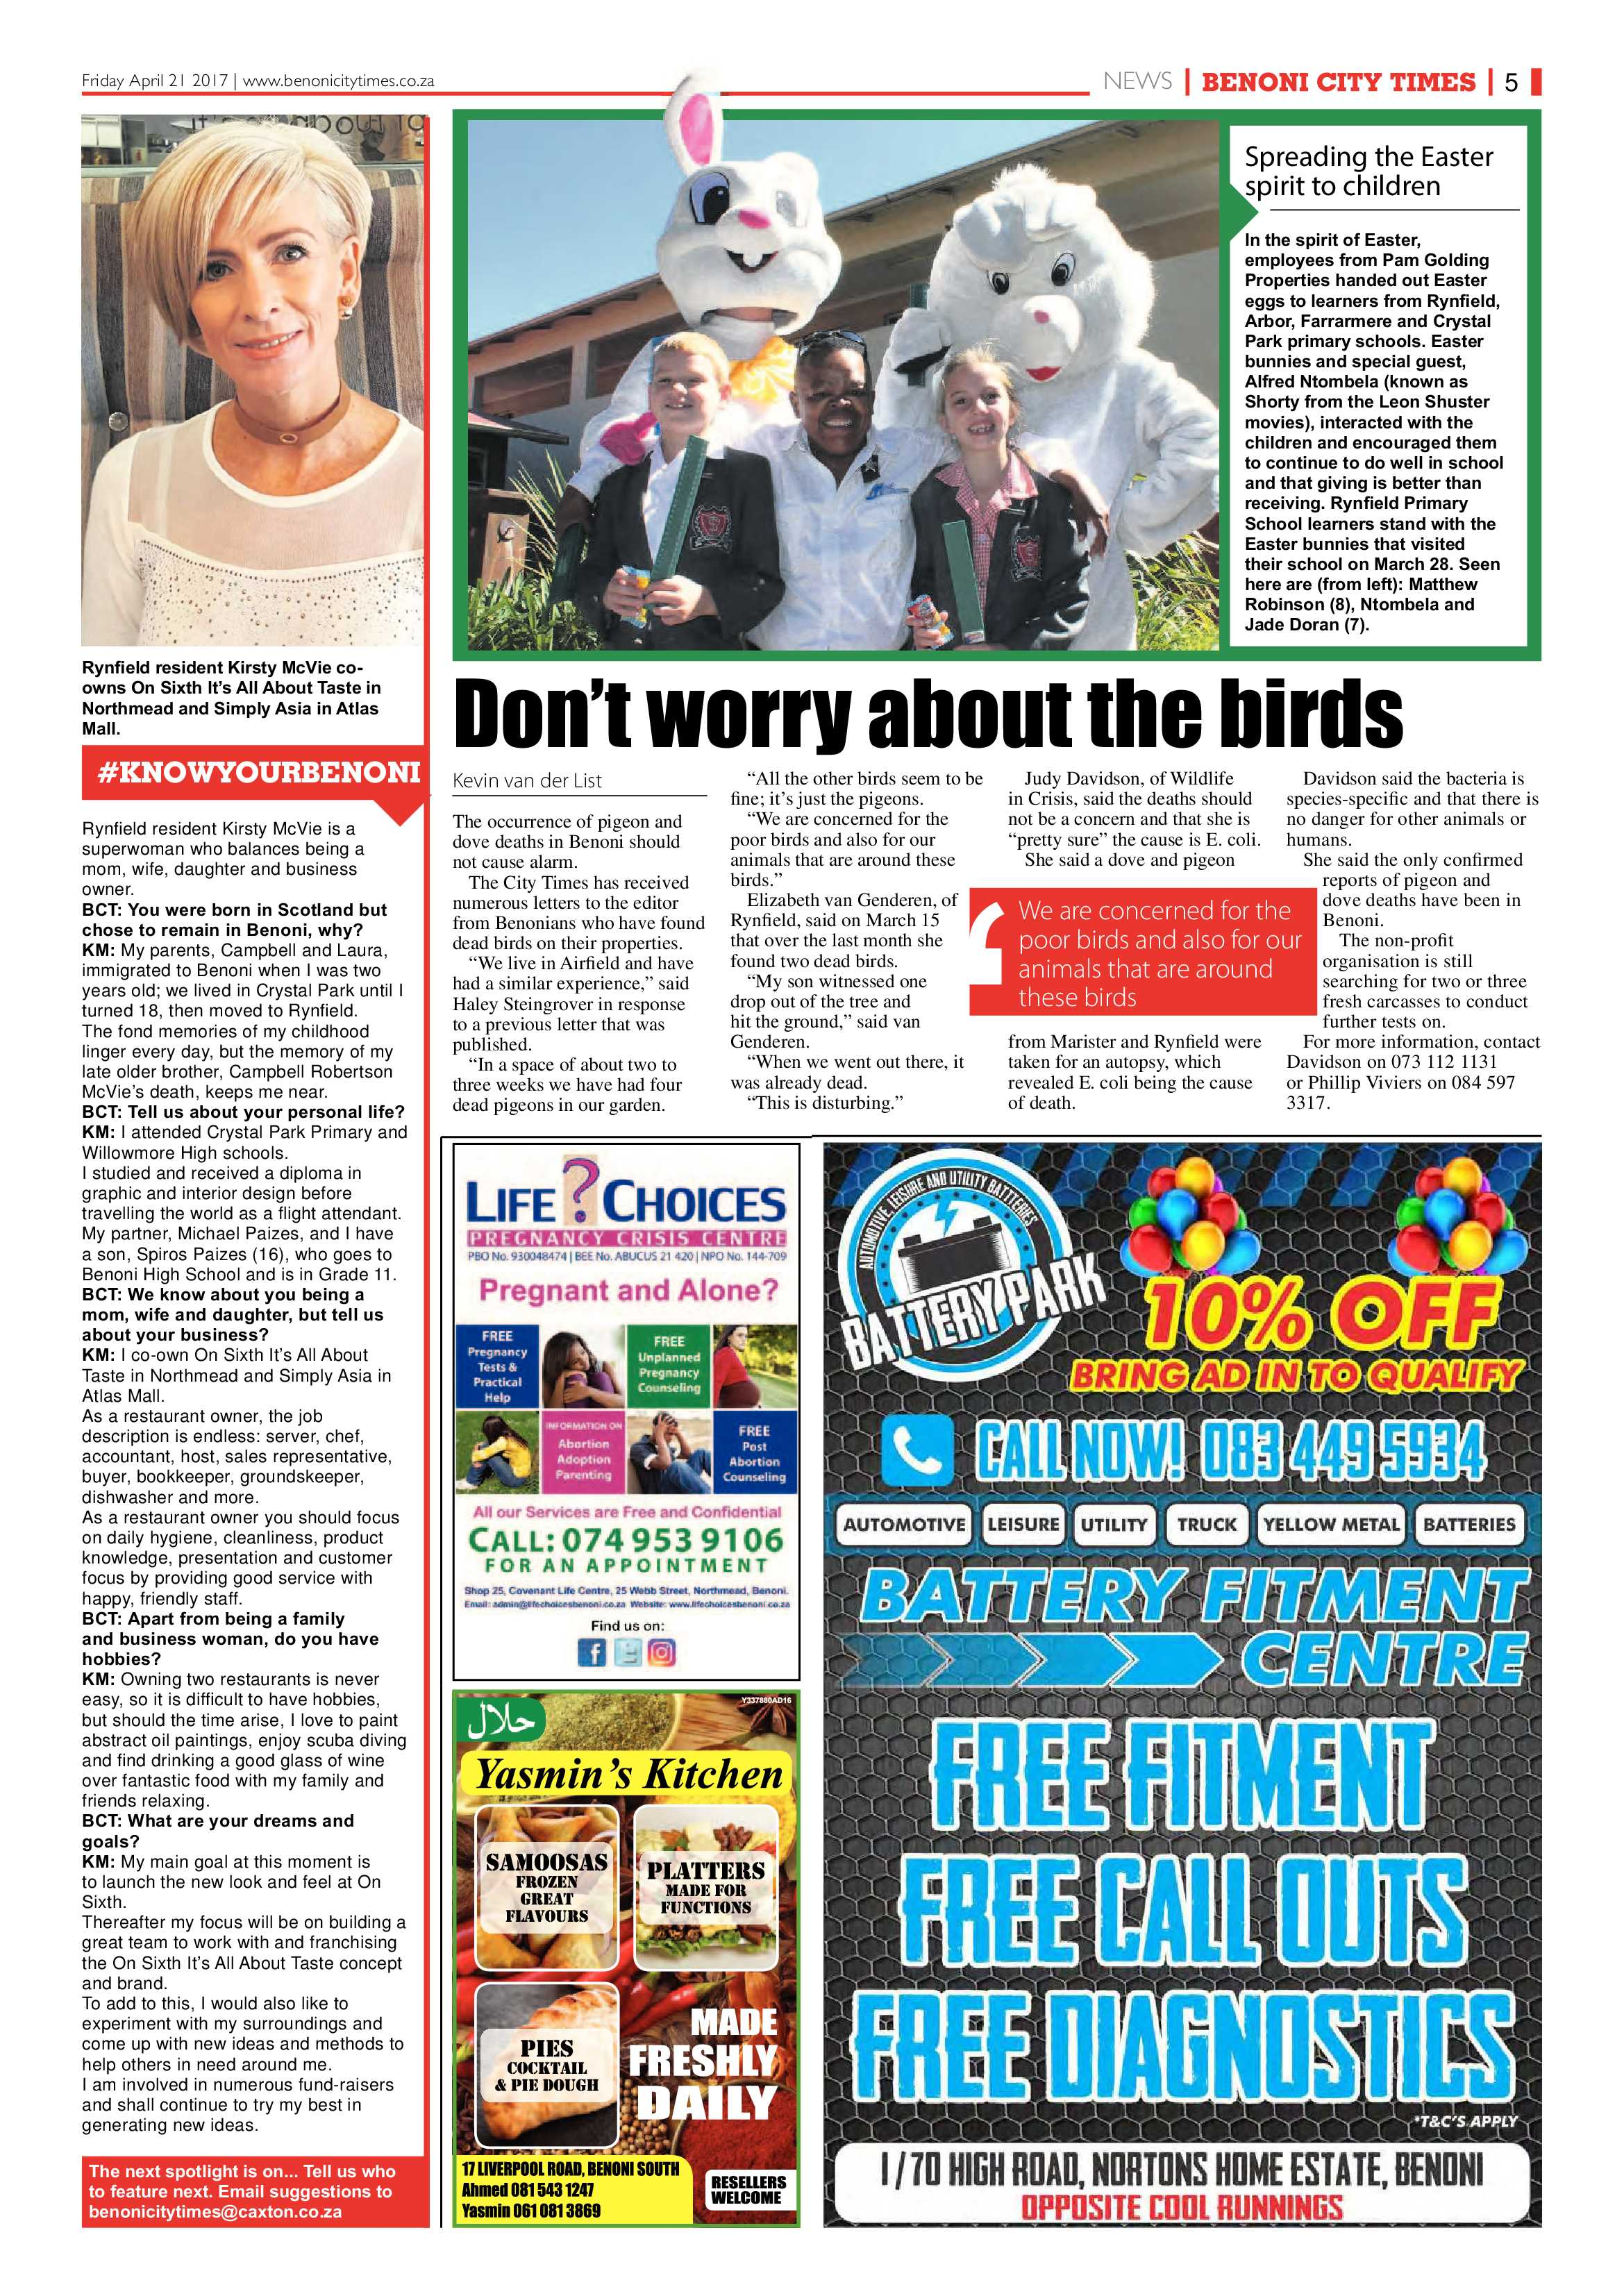 benoni-city-times-20-april-2017-epapers-page-5